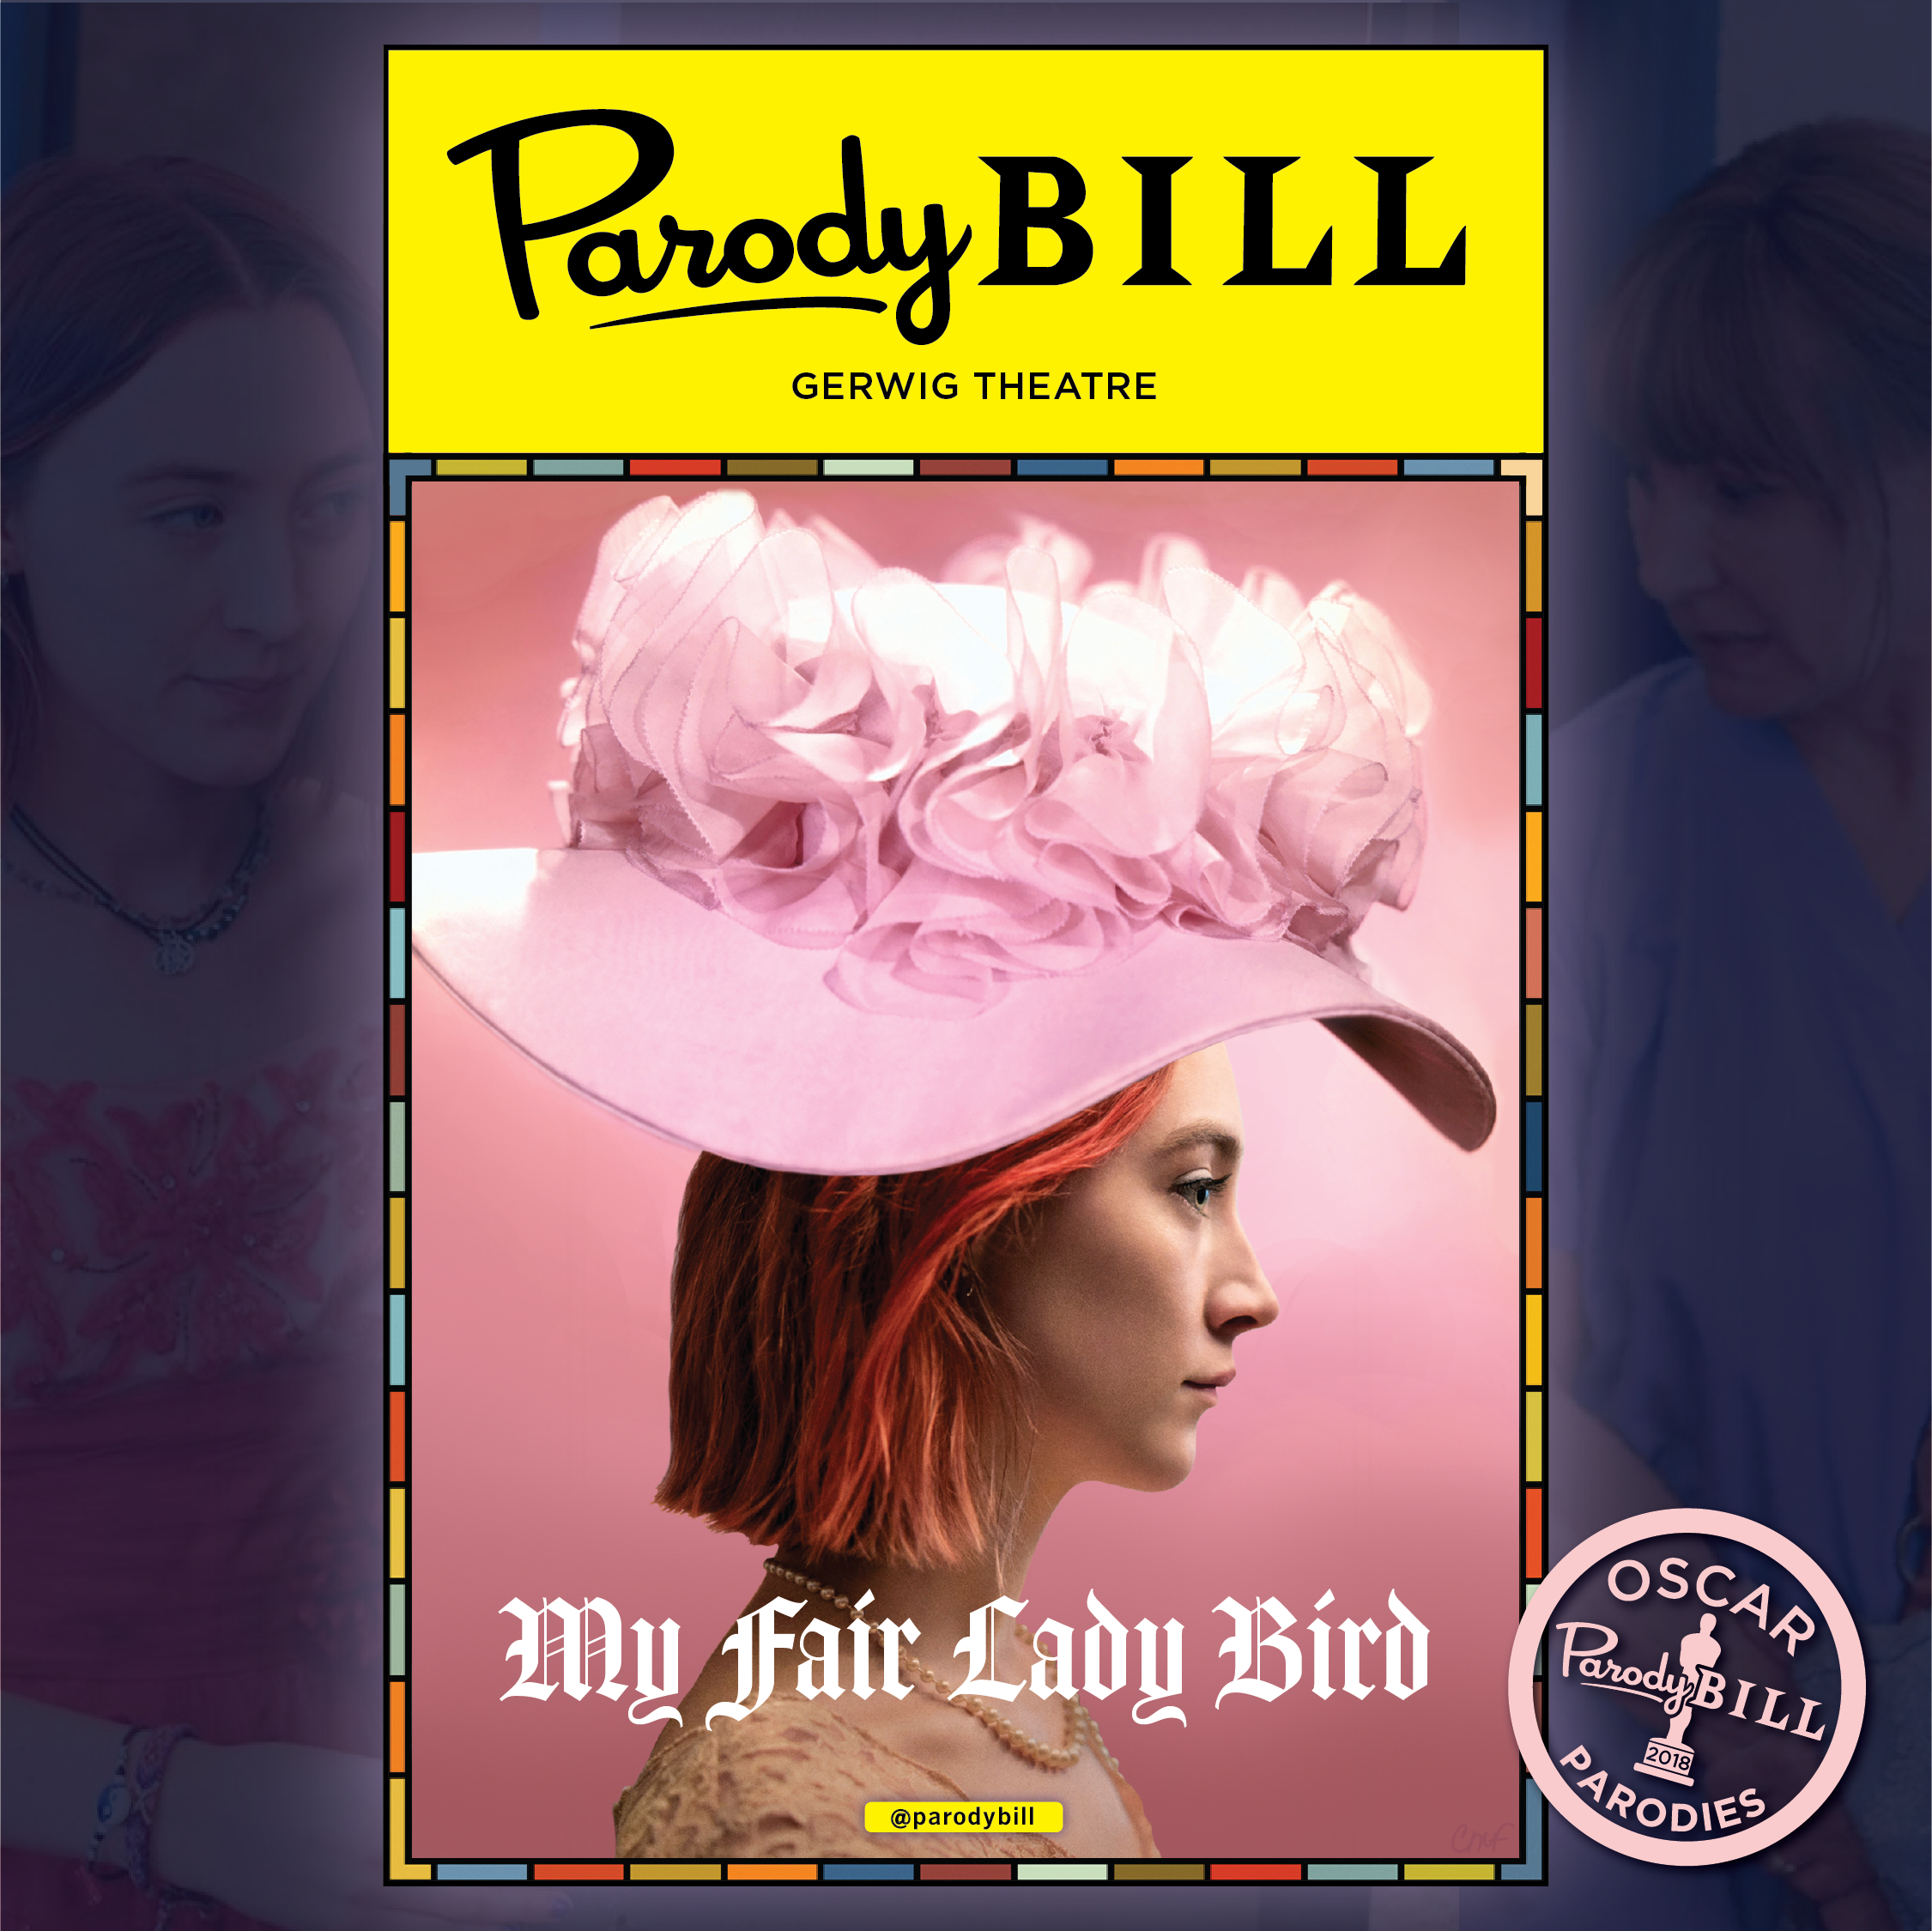 MY FAIR LADY BIRD